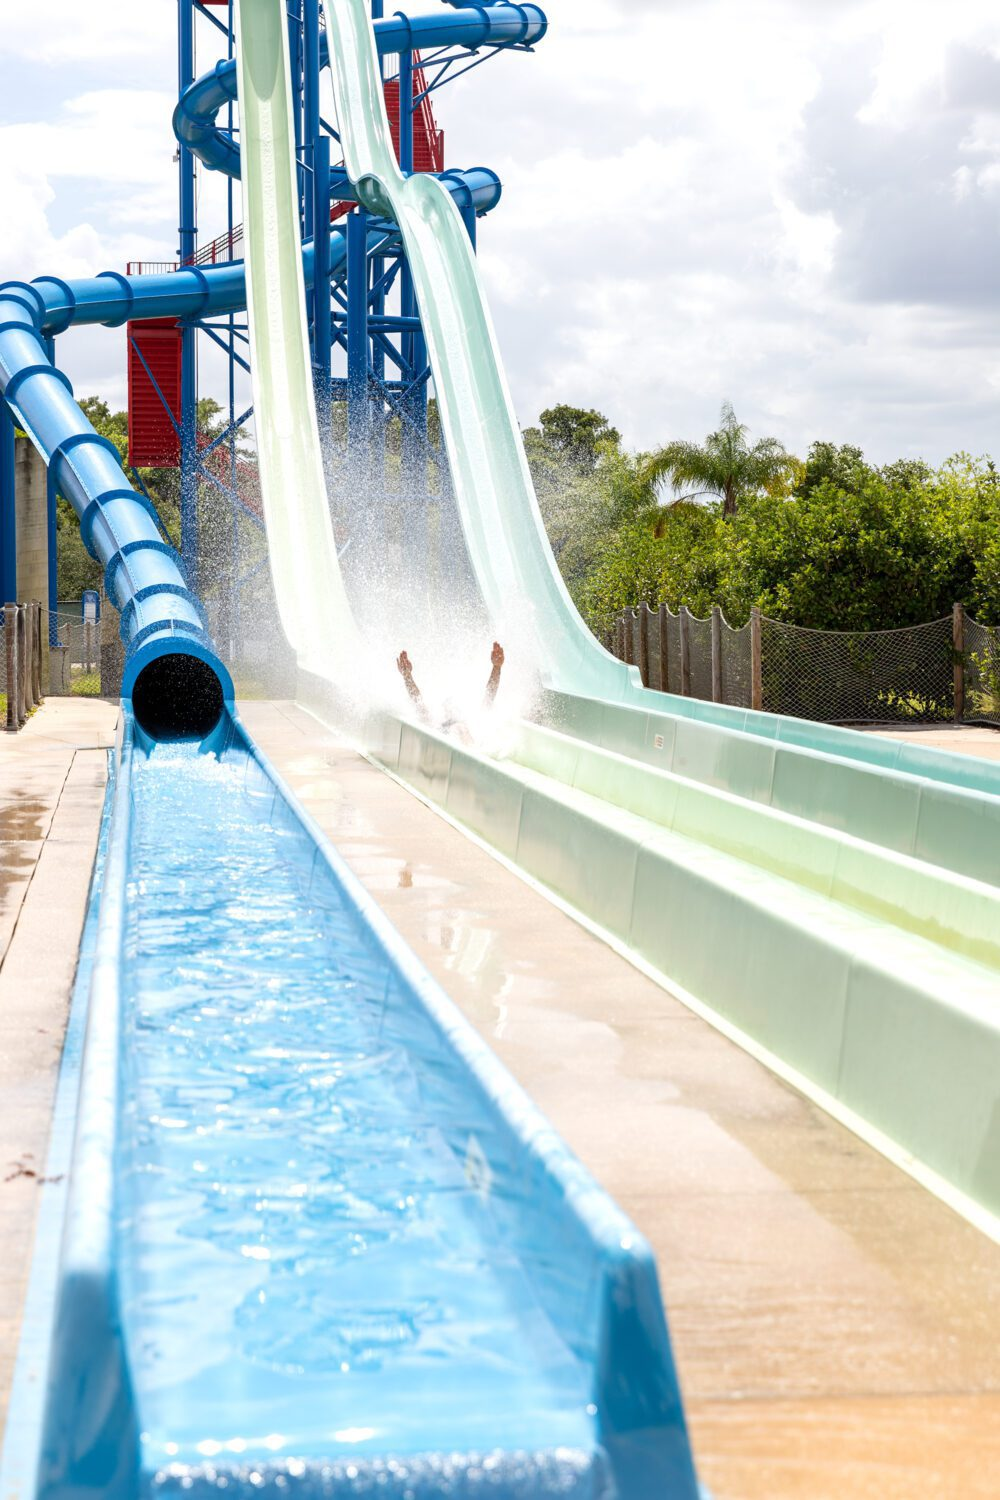 two arms sticking up on a water slide